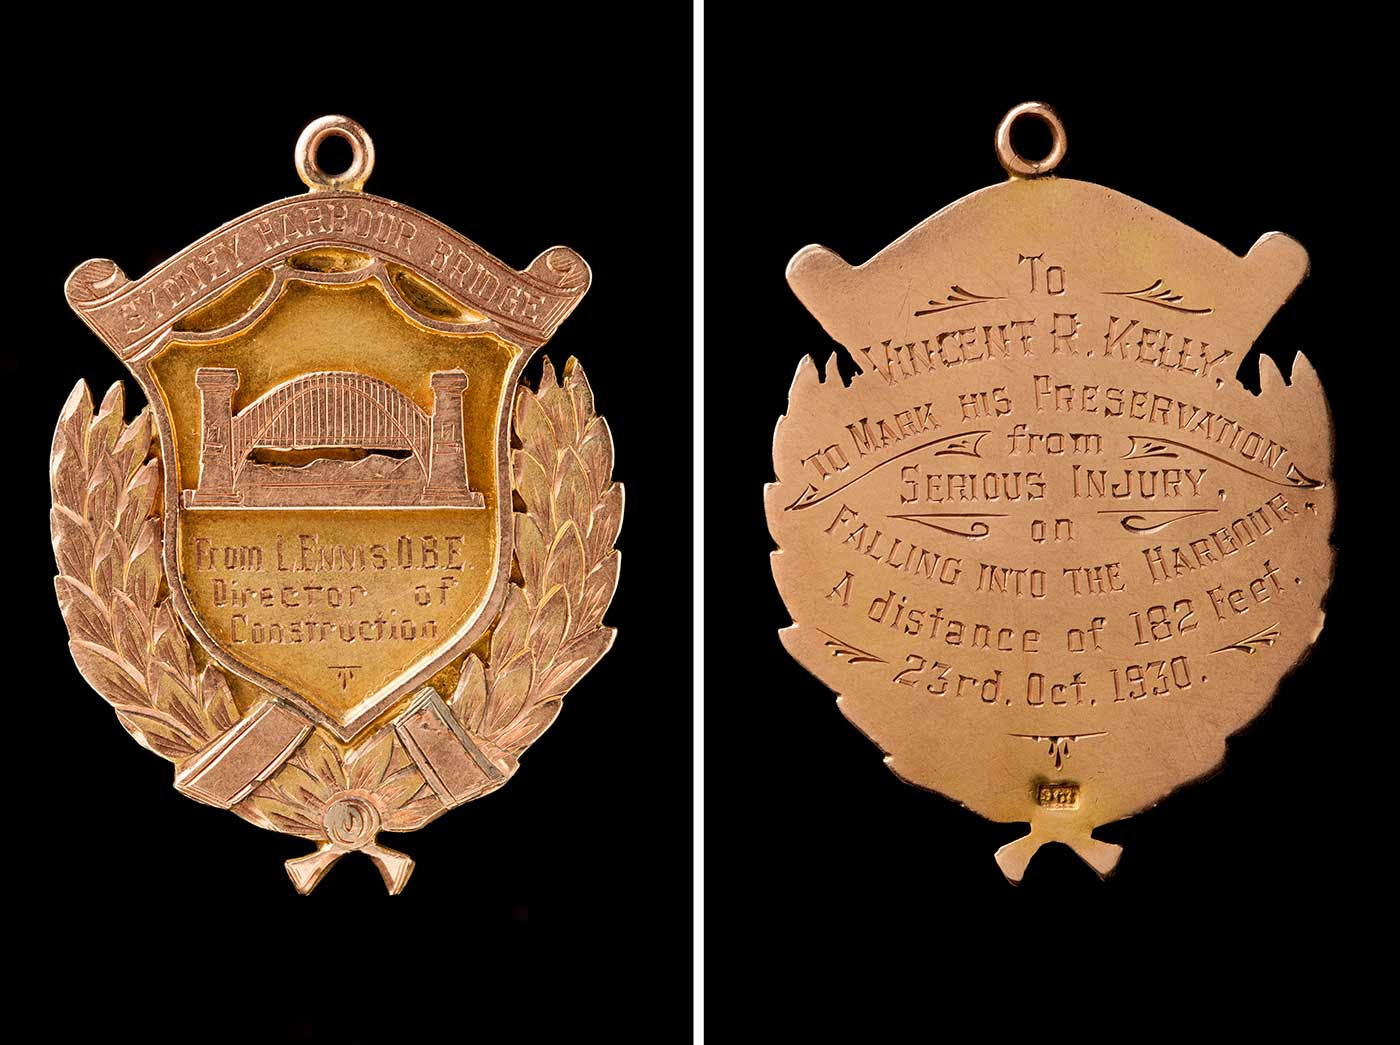 The front and back of a medal awarded to Vince Kelly.  The front has an image of the Sydney Harbour Bridge with an inscription that reads: 'From L. Ennis. O.B.E. Director of Construction'. The inscription on the back reads: 'To Vincent R. Kelly. To mark his preservation from serious injury on falling into the harbour. A distance of 182 feet. 23rd. Oct. 1930.' - click to view larger image